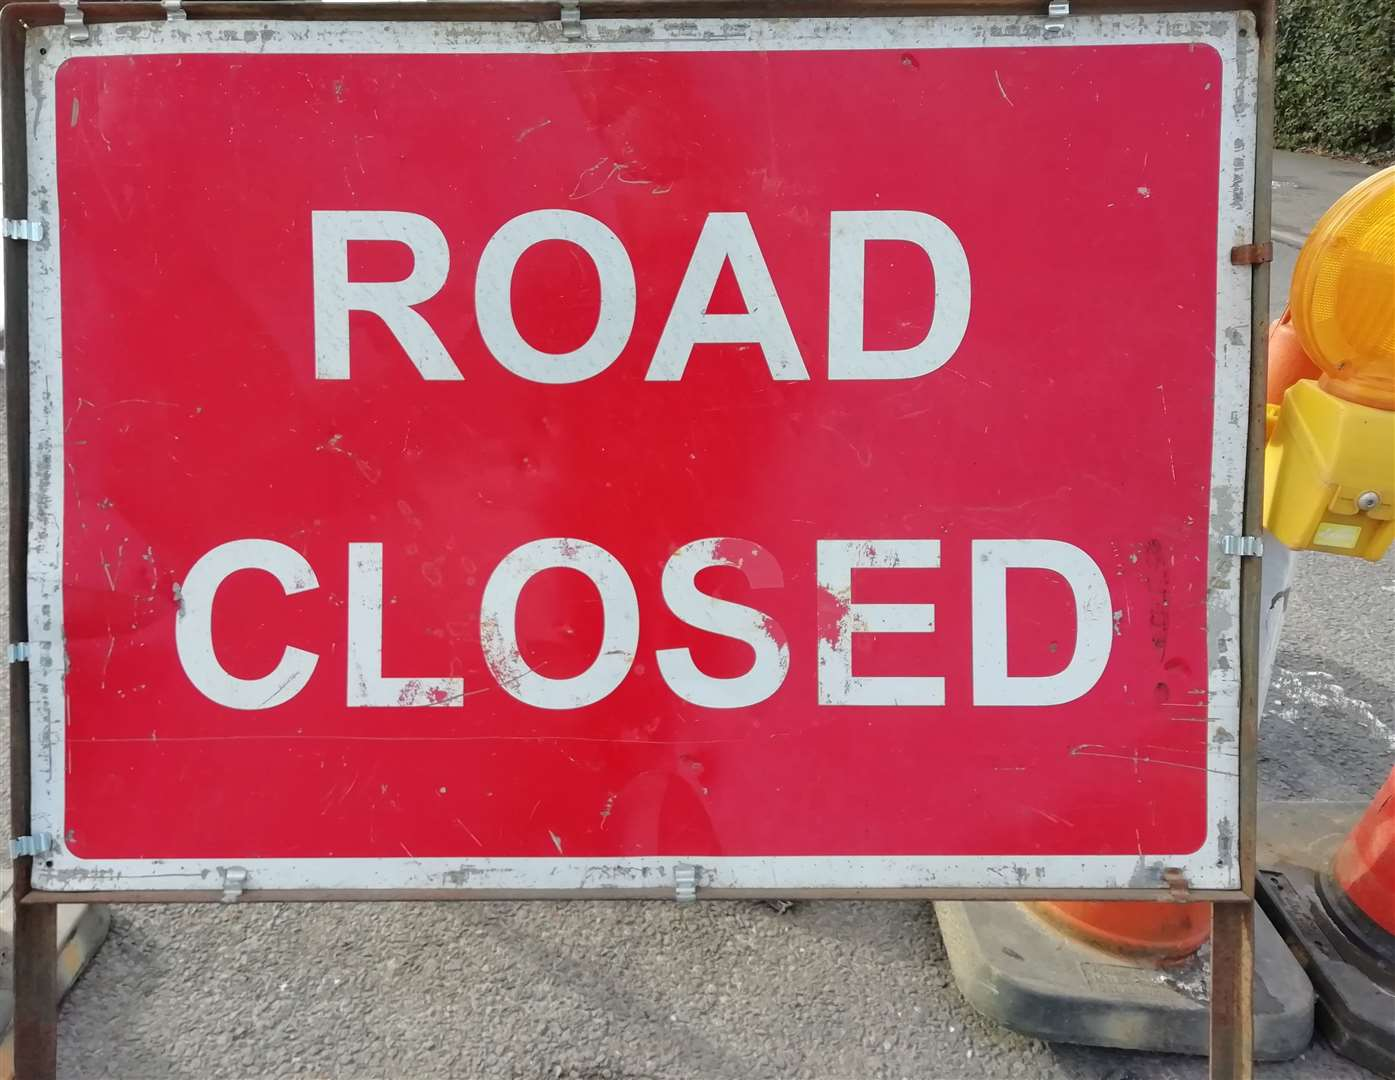 Drivers face lengthy diversion during East Road closure